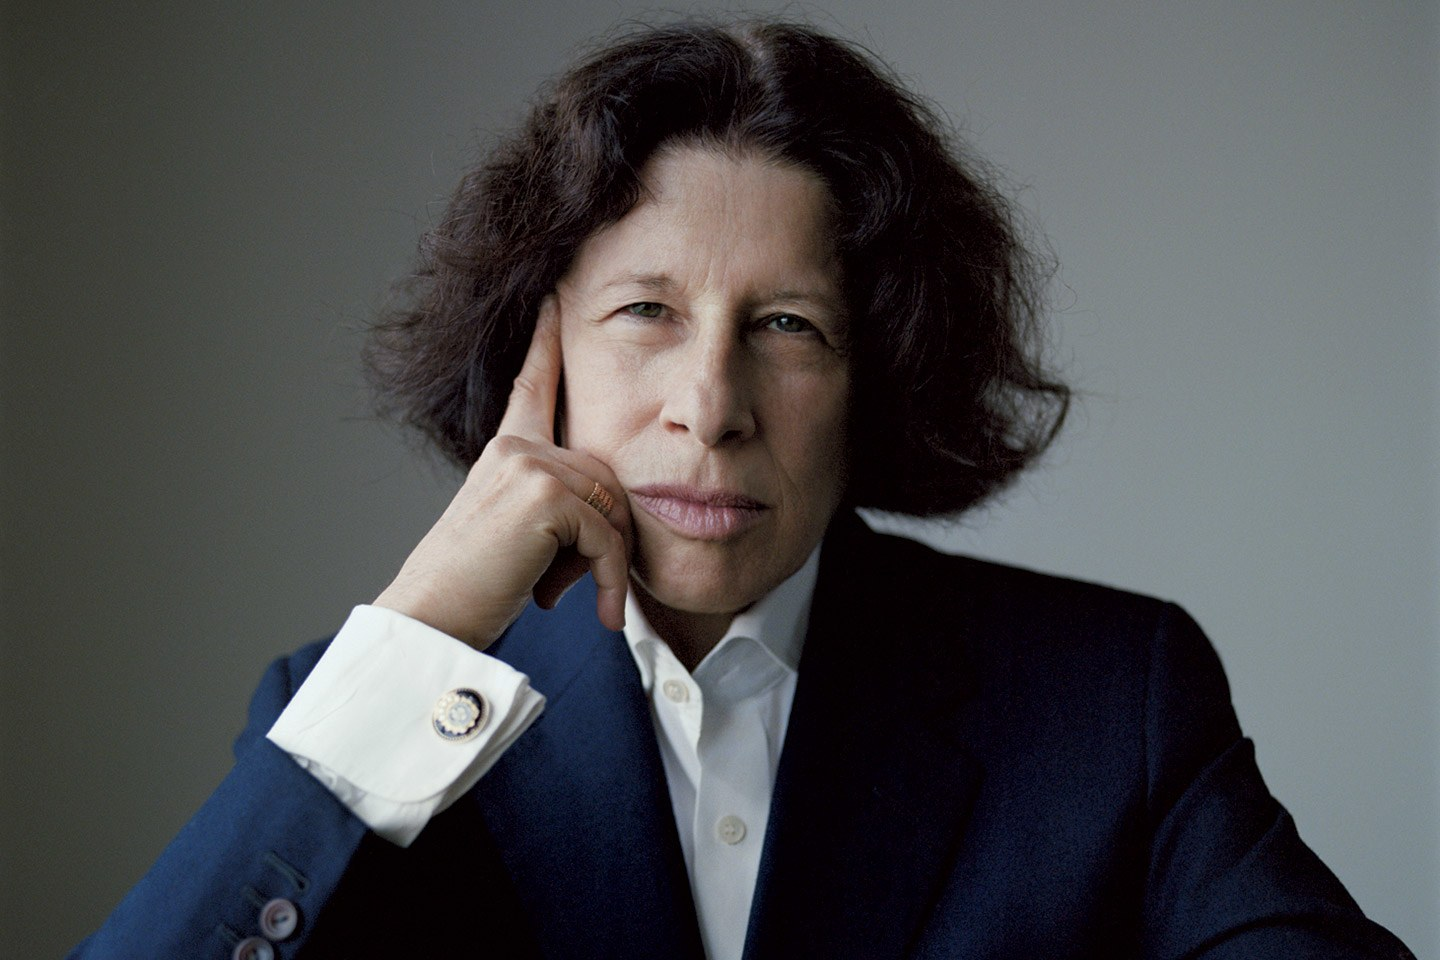 Fran Lebowitz by Brigitte Lacombe | Photo via Vanity Fair